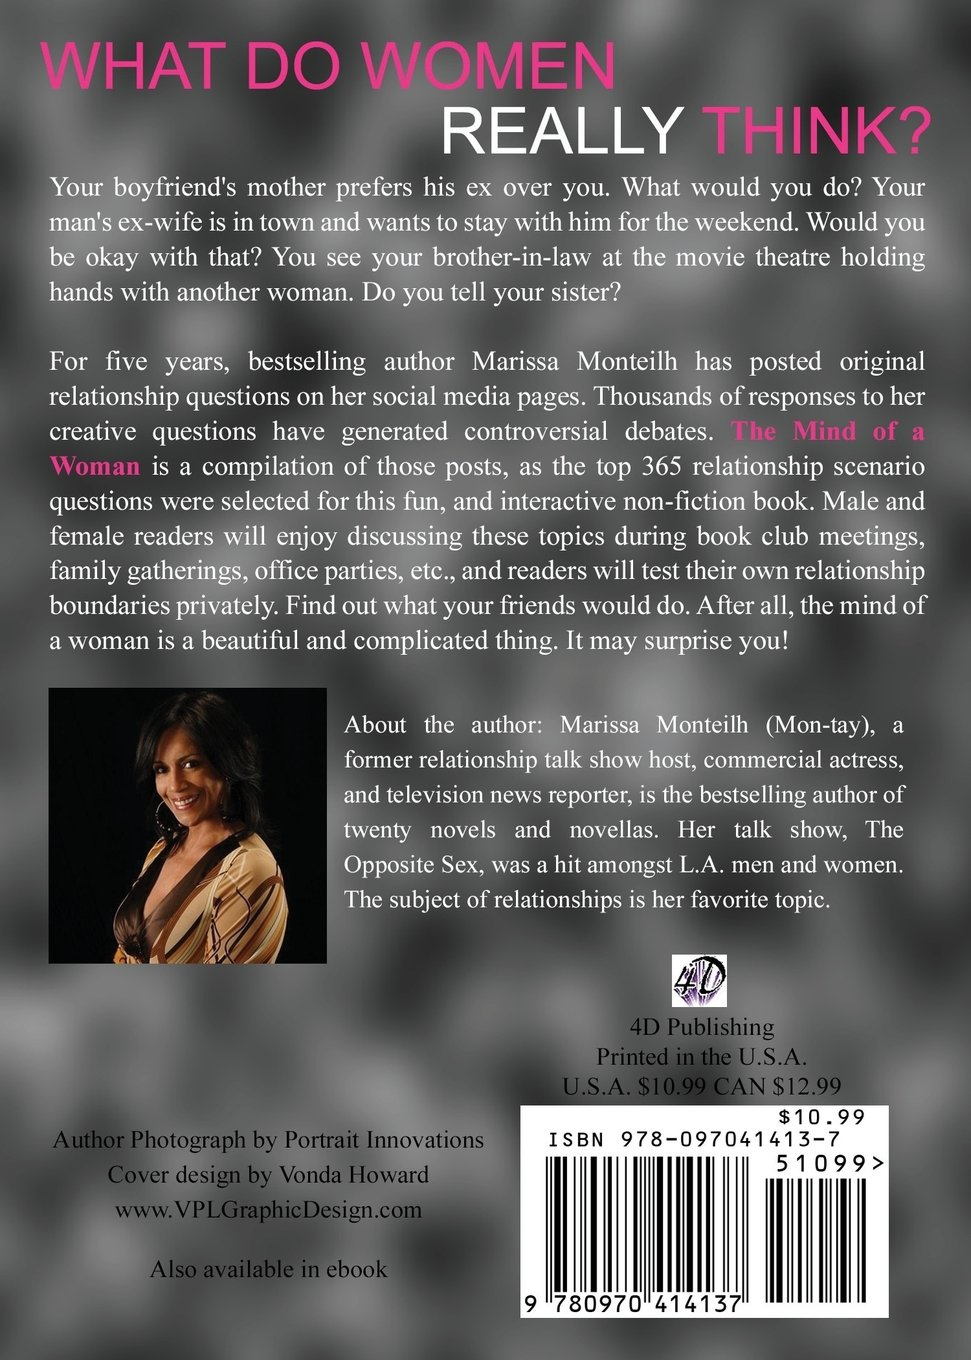 The mind of a woman 365 relationship scenario discussion the mind of a woman 365 relationship scenario discussion questions marissa monteilh 9780970414137 amazon books fandeluxe PDF